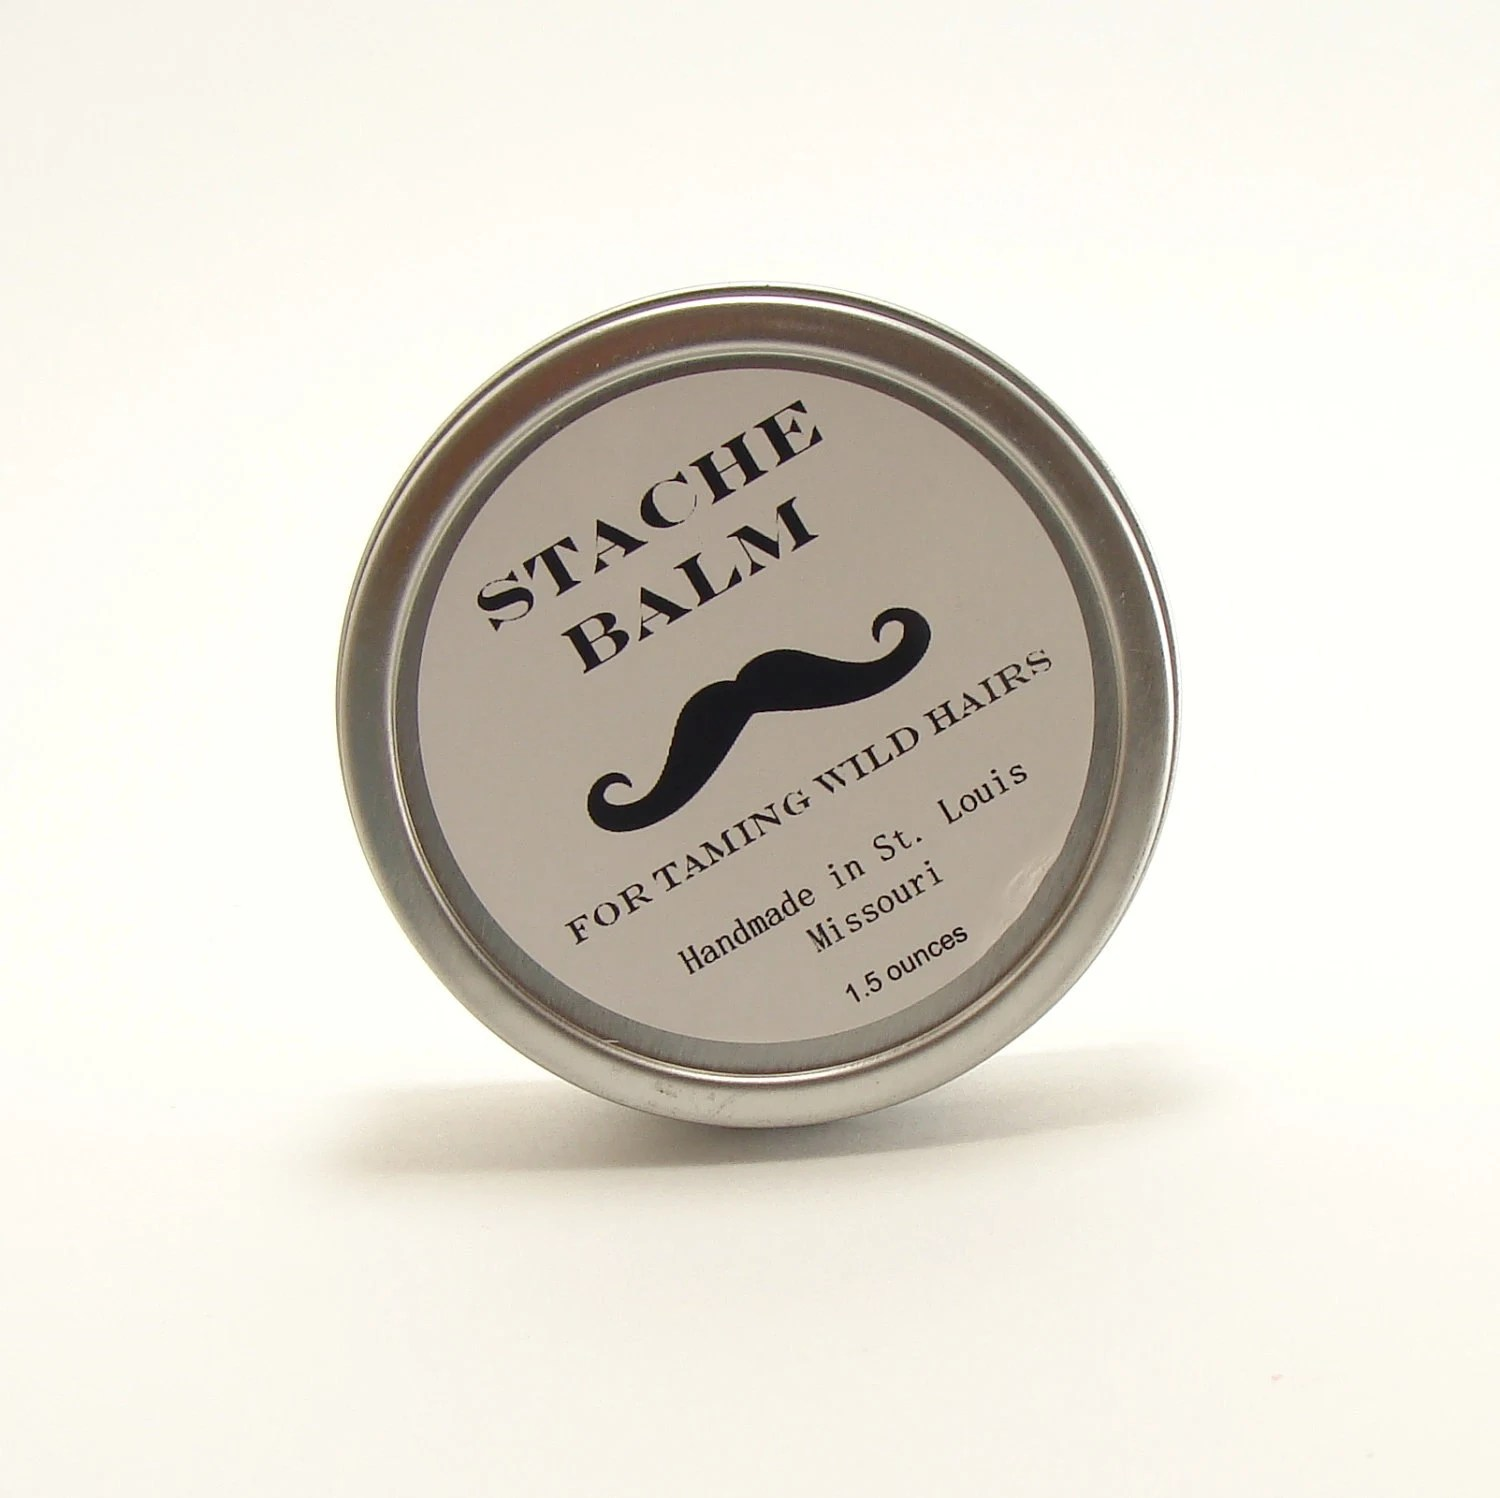 Mustache Stache Balm For Men Stache and Beard Conditioner  After Shave Skin Care Father's Day - ABreathOfFrenchAir